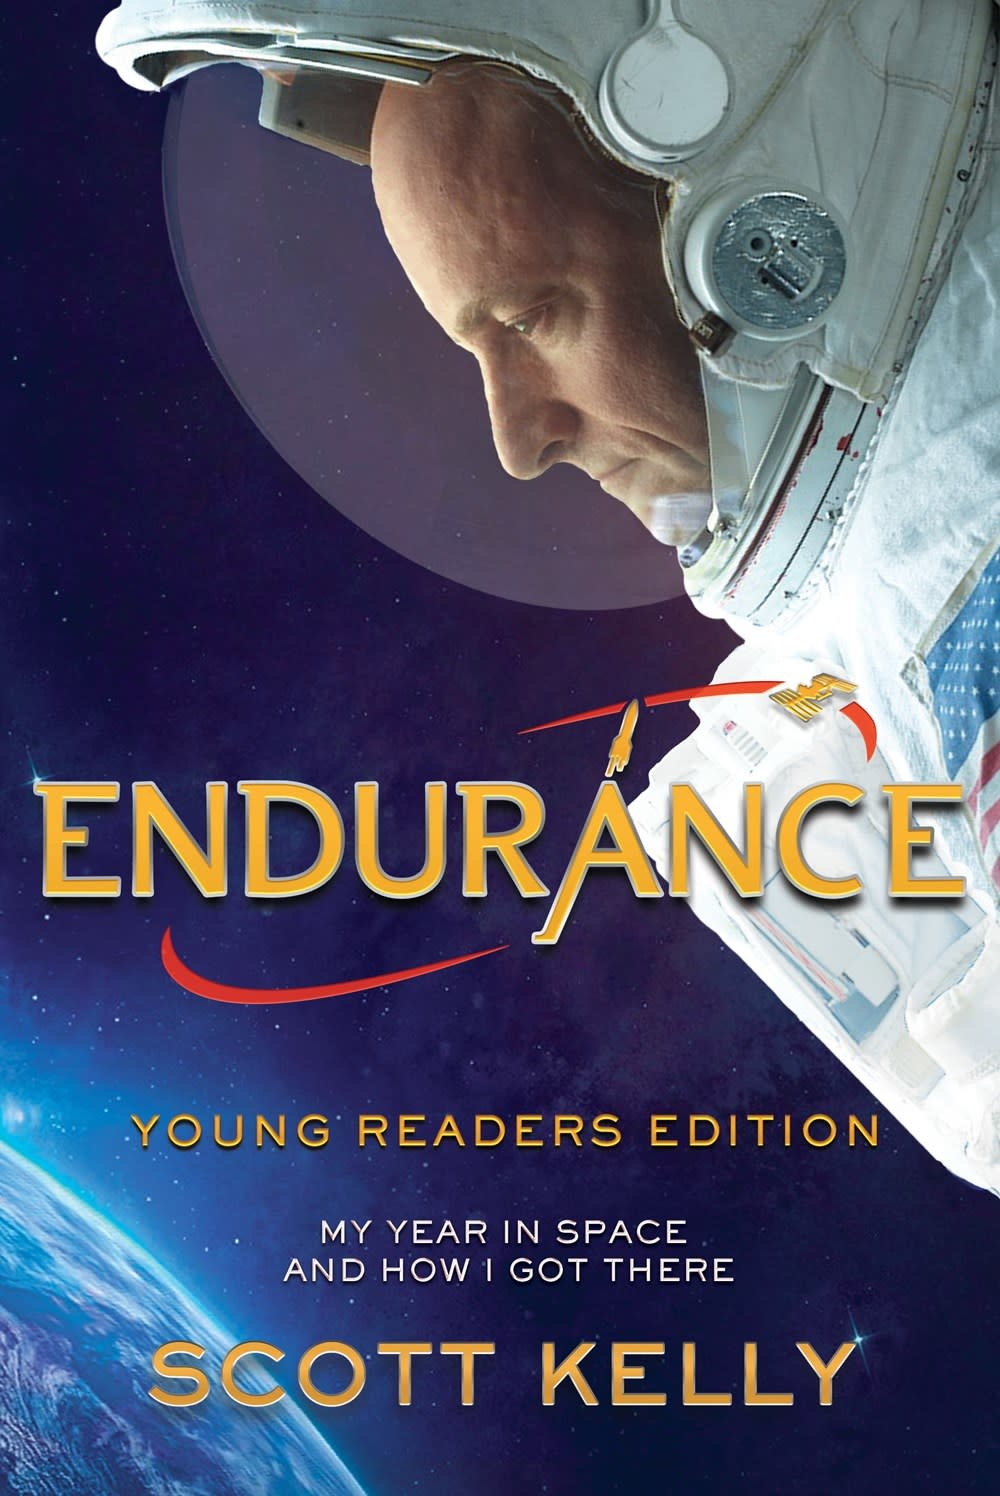 Yearling Endurance (Young Readers Ed.) [Scott Kelly]